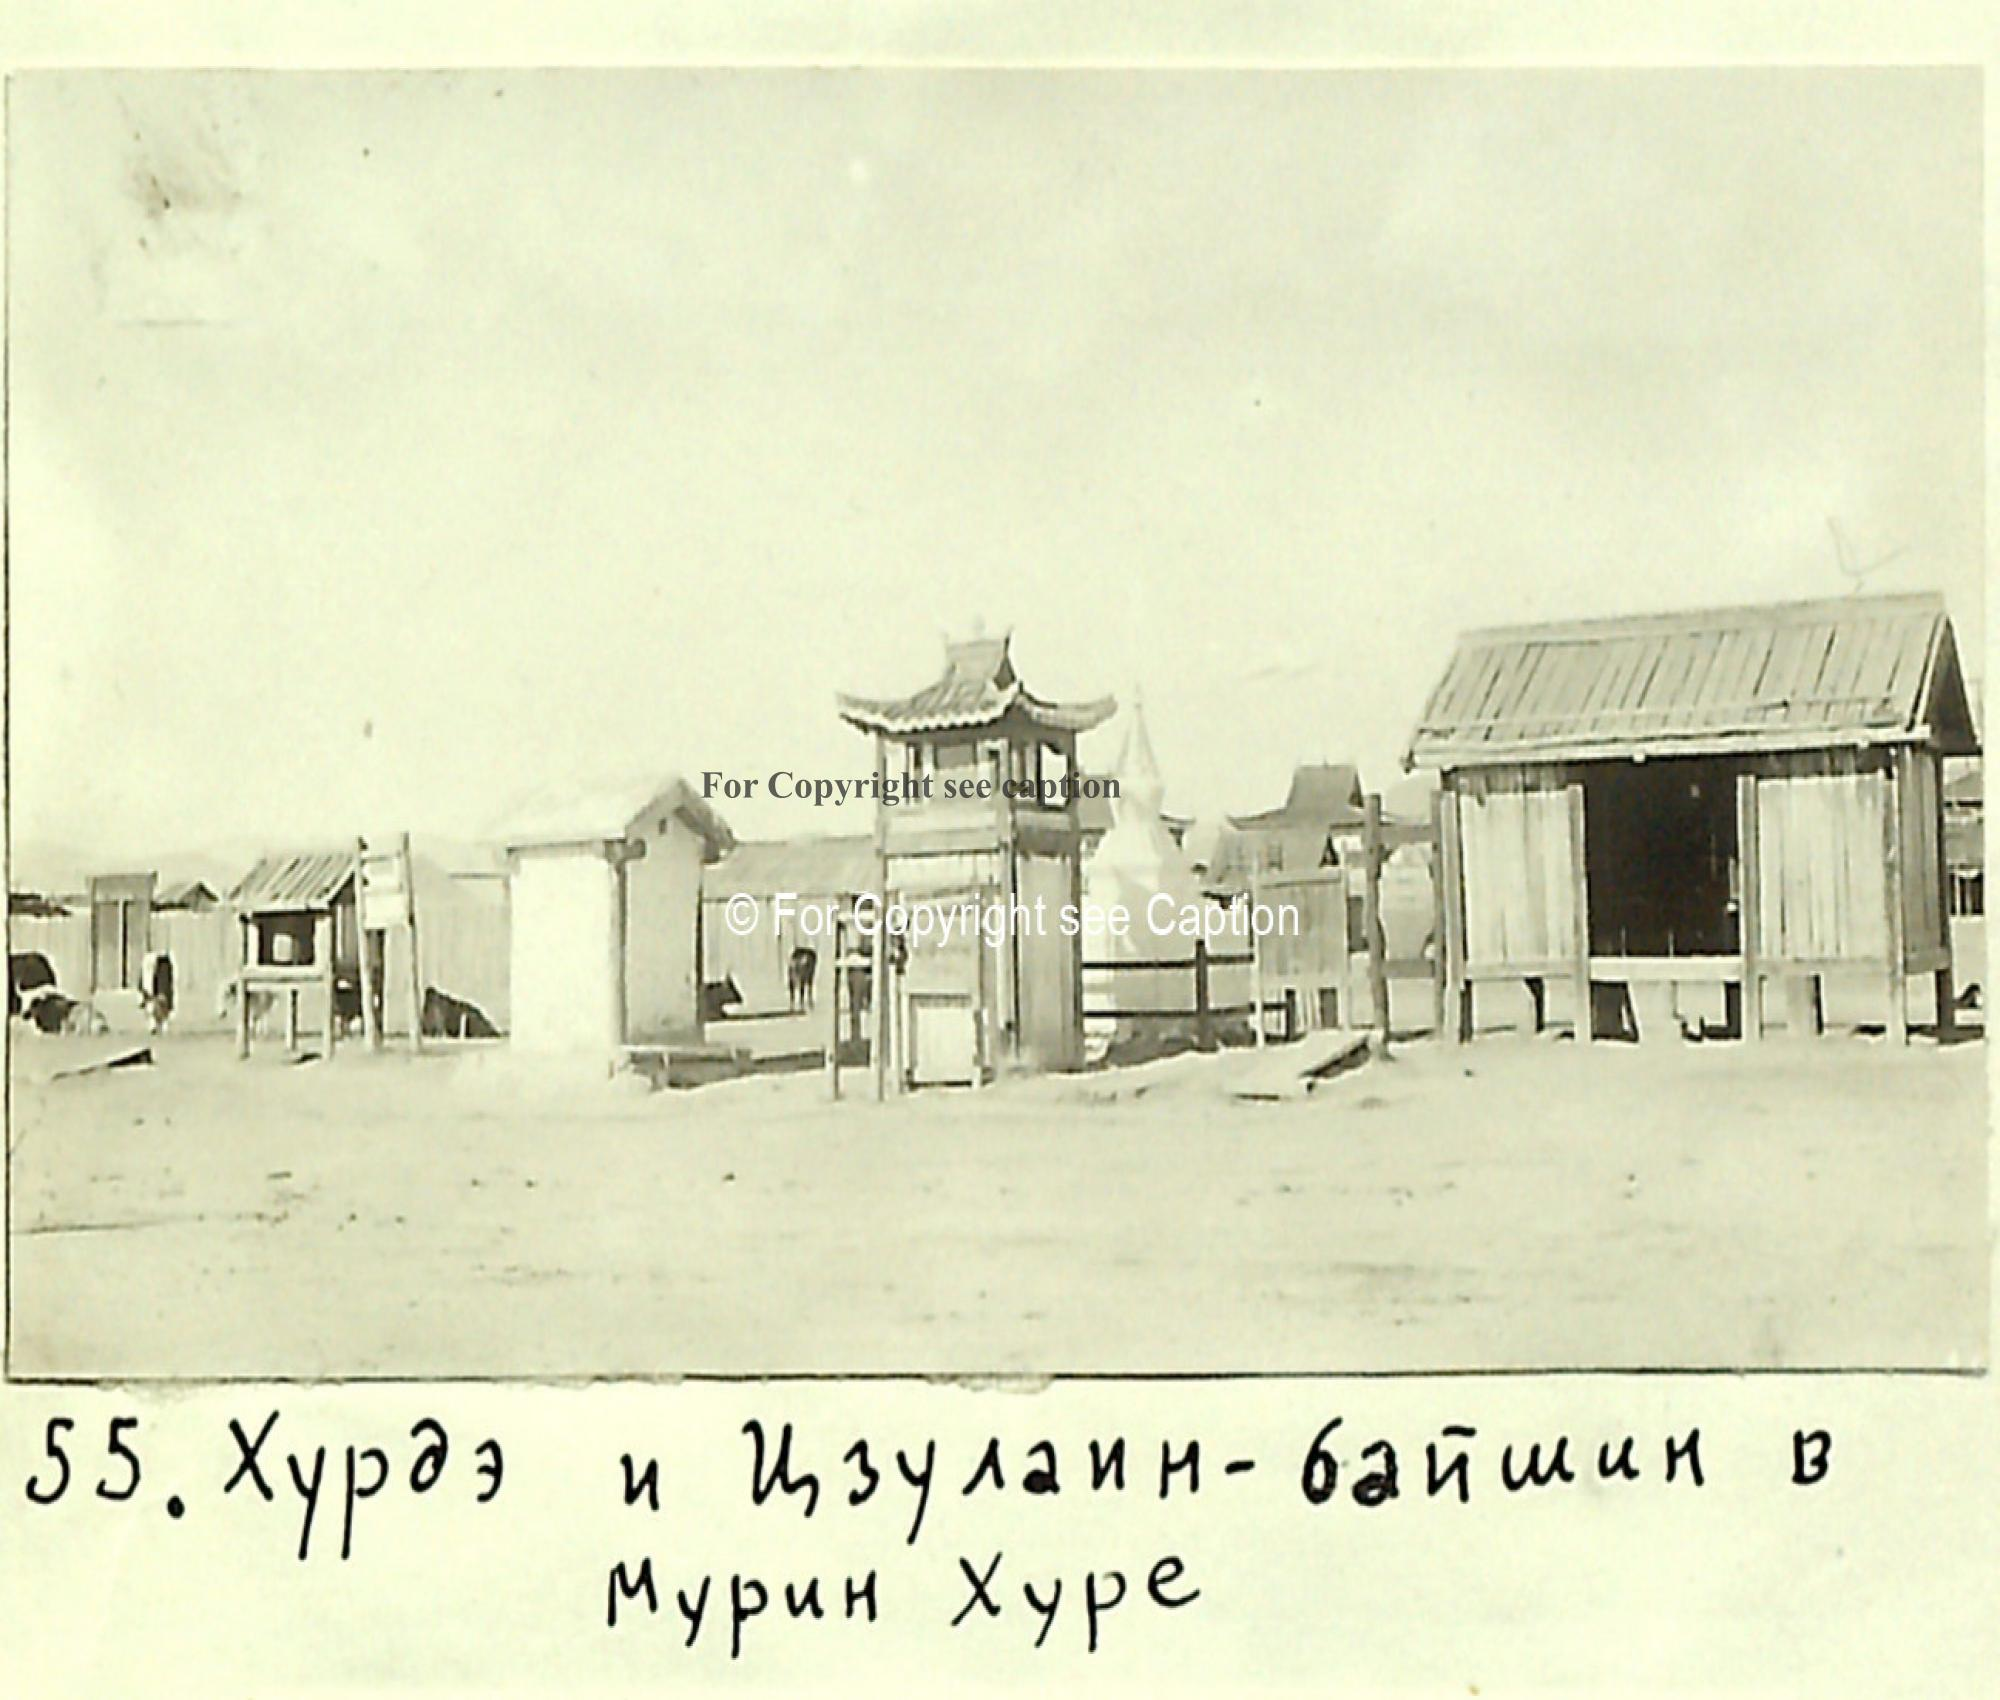 Prayer wheels and shrines for butter lamps. Film Archives K-23651,  taken by Kondratyev in the 1920s